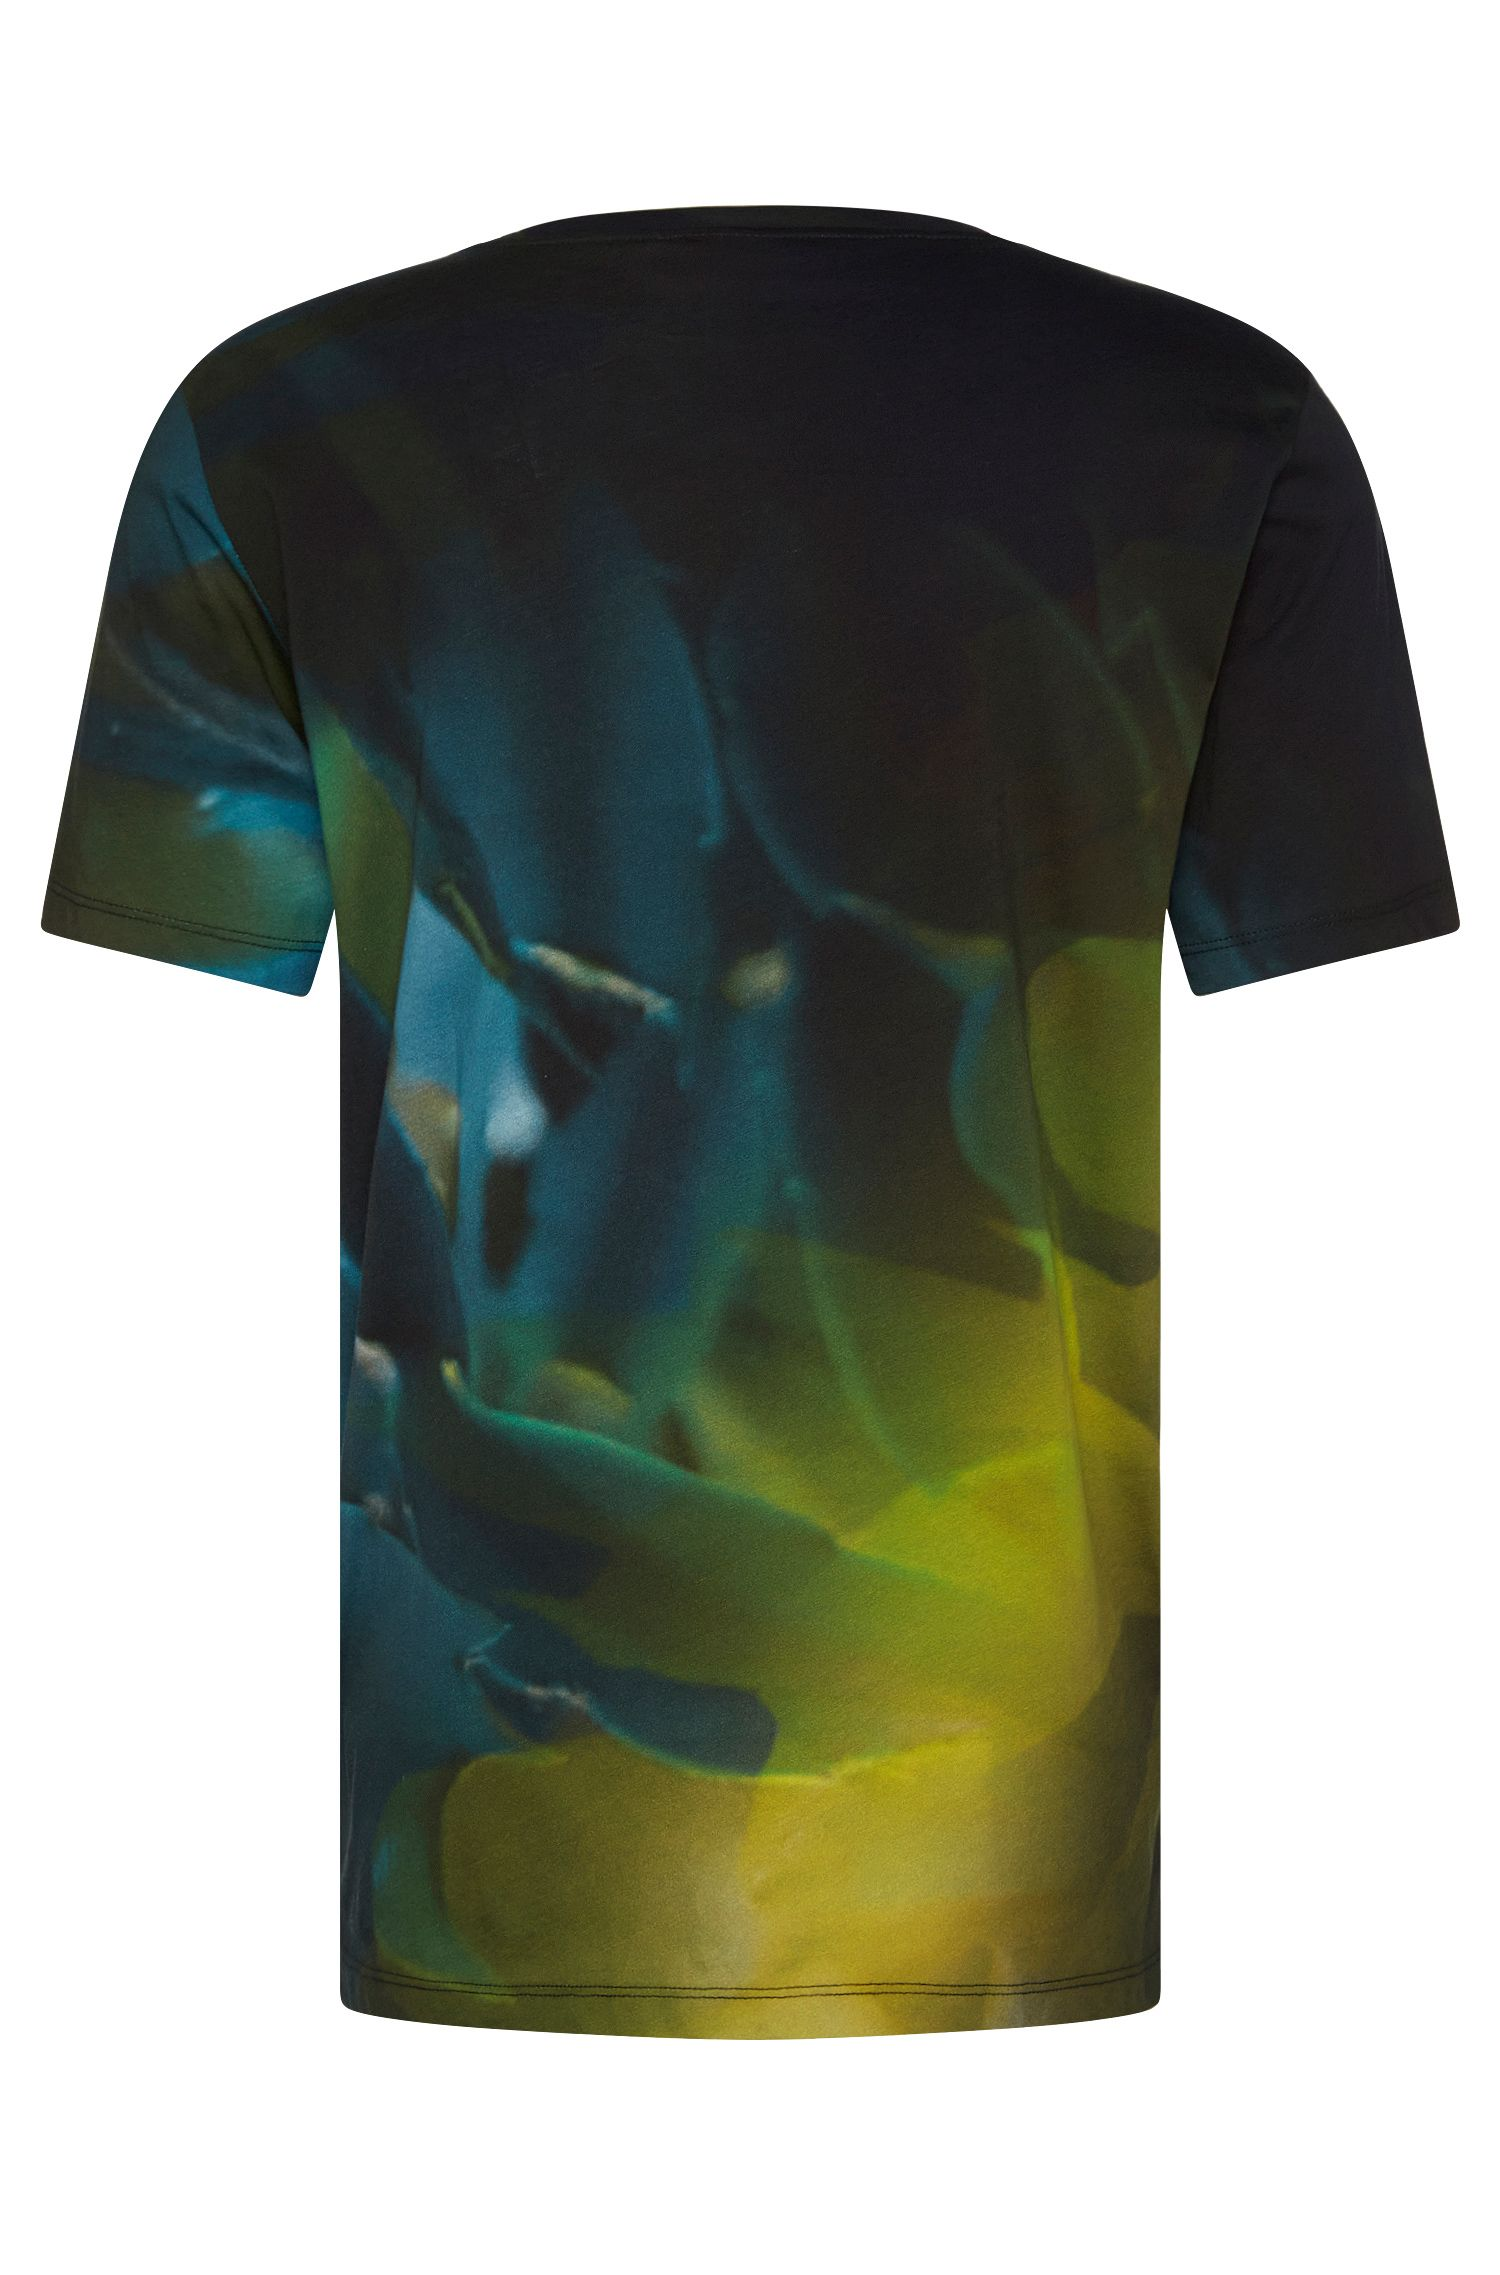 Gemustertes Relaxed-Fit T-Shirt aus Baumwolle: 'Dunny'